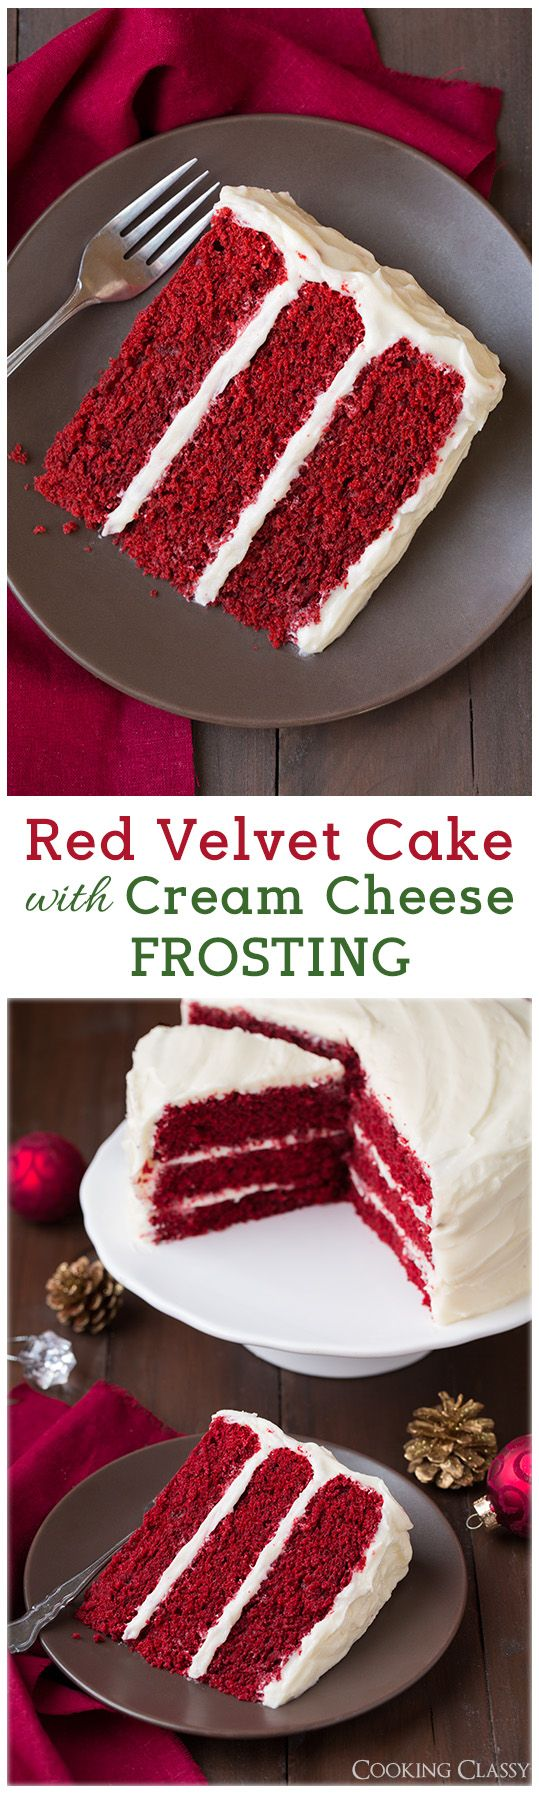 it     s Frosting   Red Velvet to and for the with raspberries and big top black blueberries Cream handbag Delicious   the perfect Add Cheese Cake  th